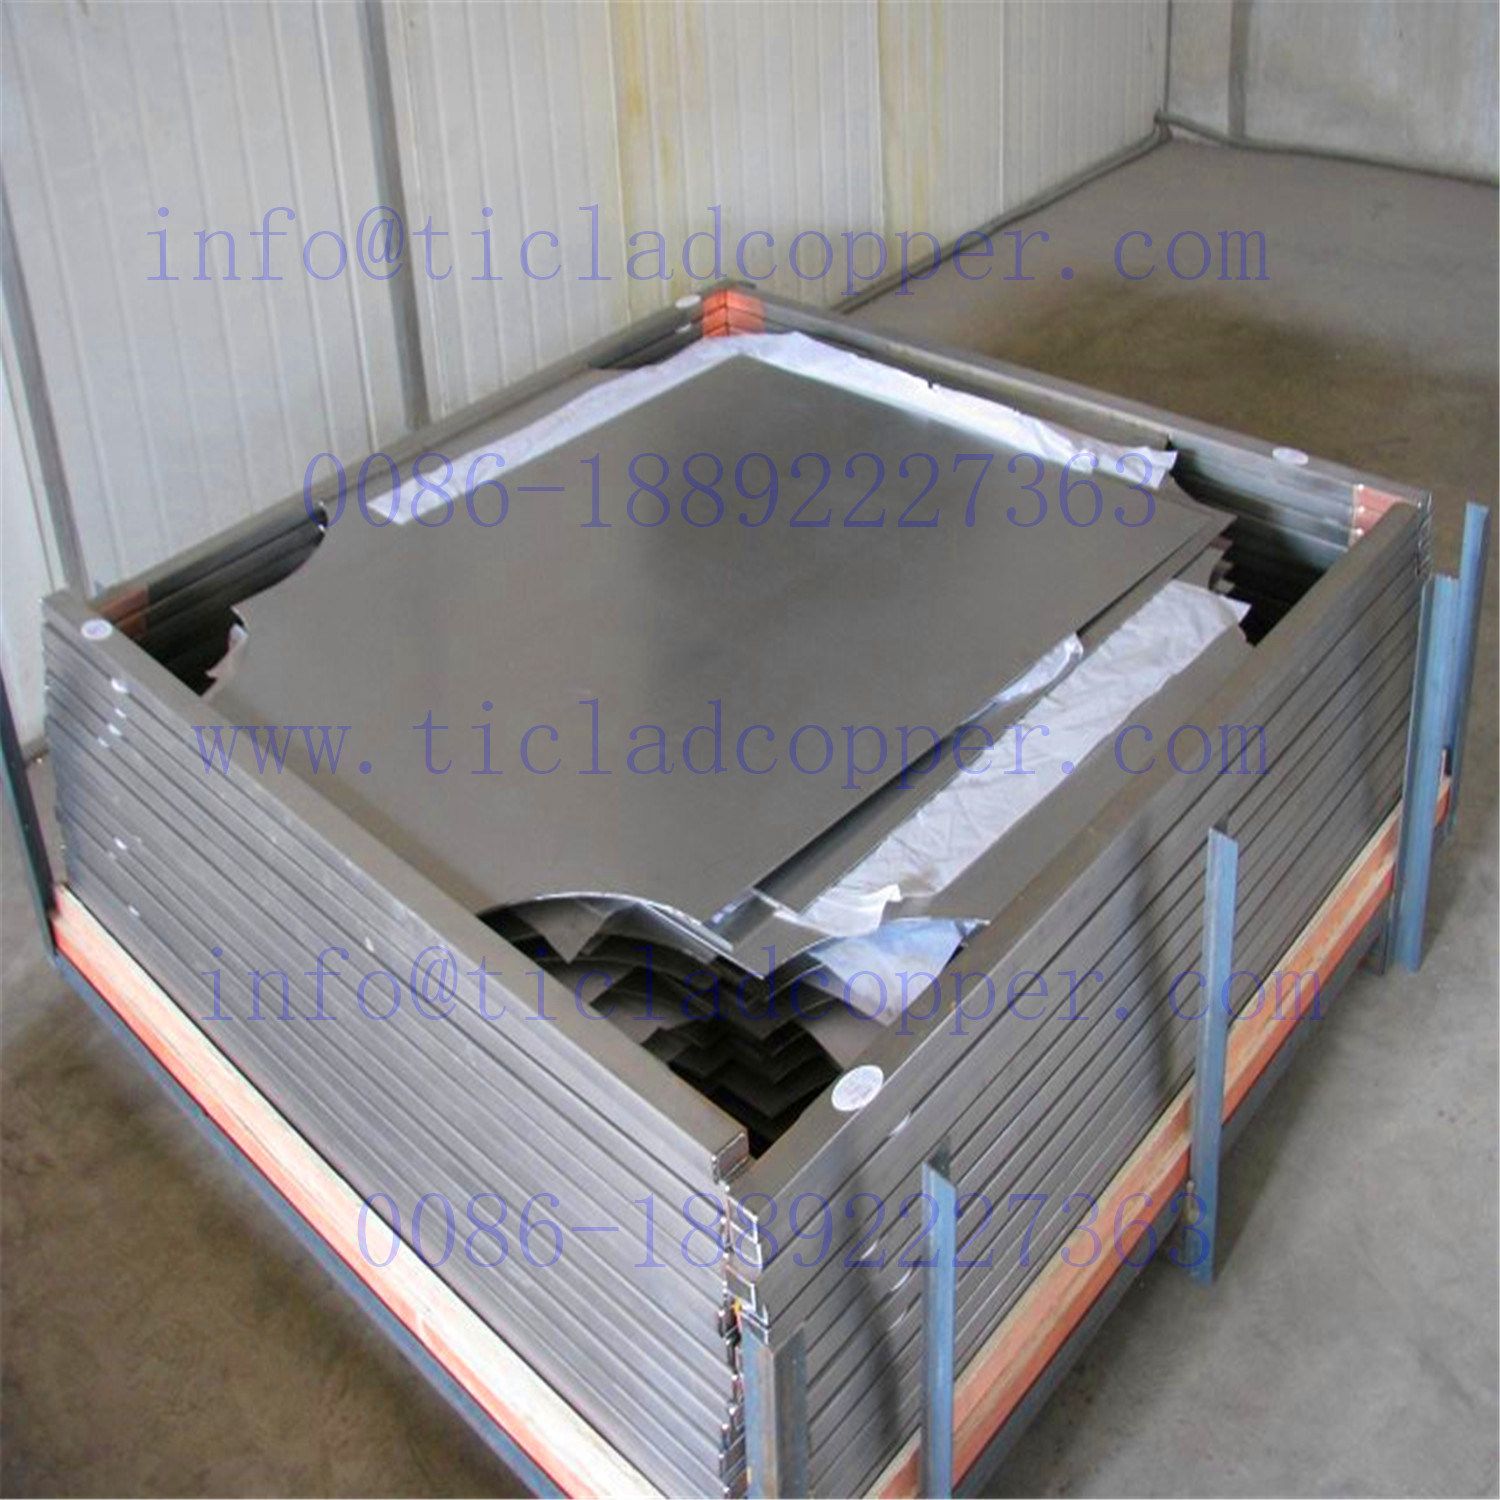 Gr1 Ti Cathode Plate/ Sheet for Gold Electrowinning/ Copper Recovering